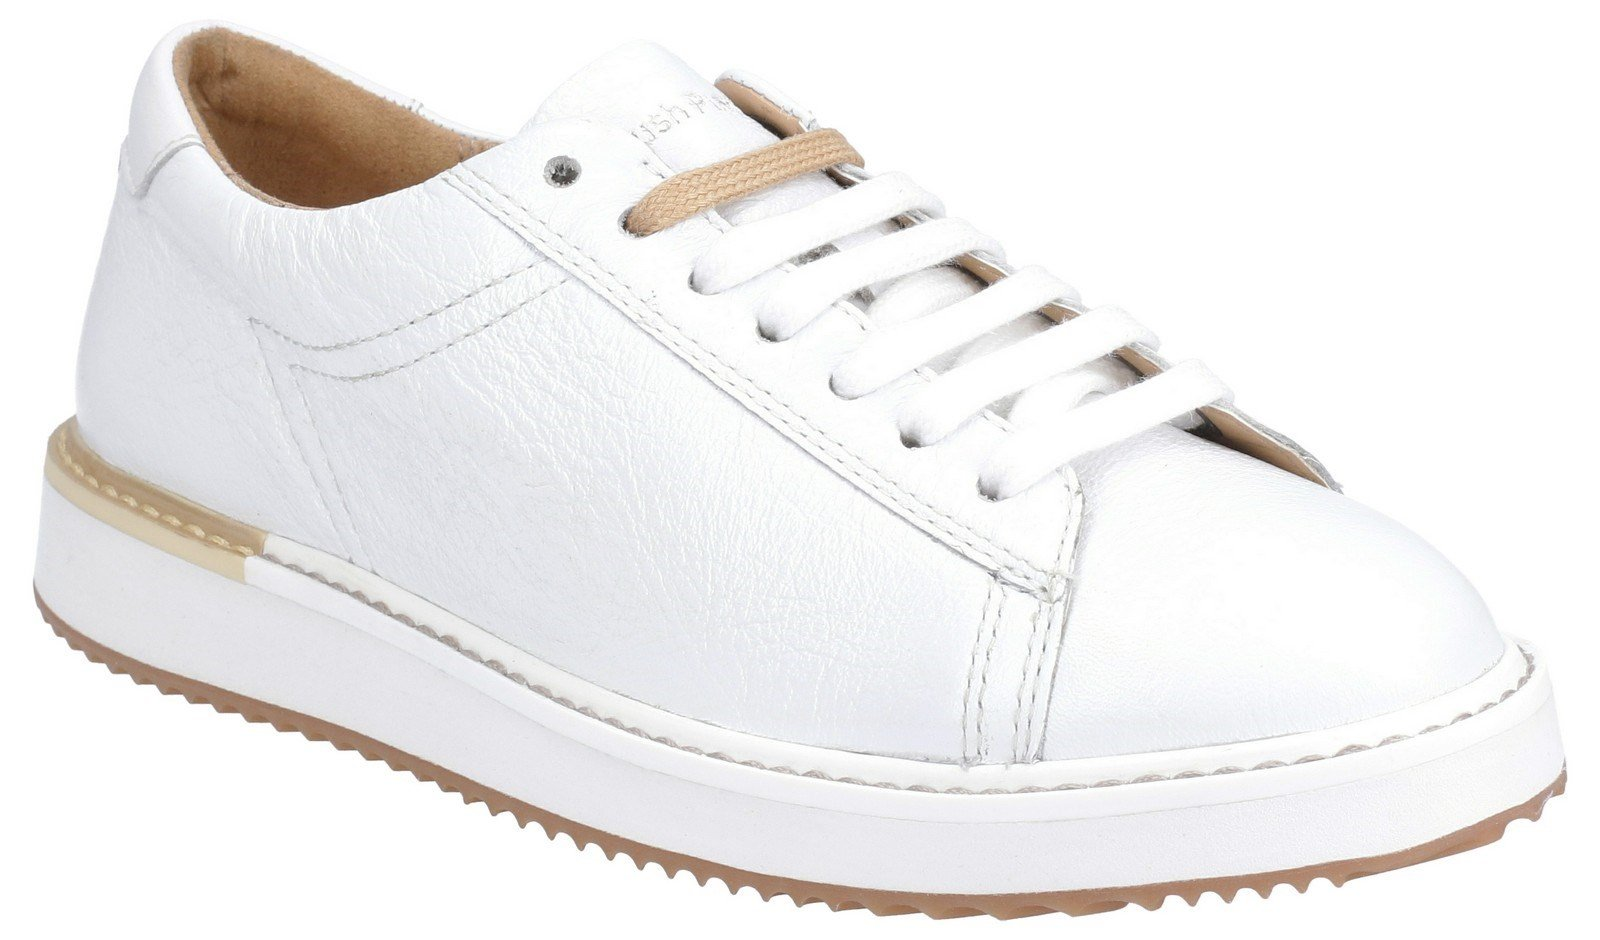 Hush Puppies Women's Sabine BouncePLUS Lace Up Trainer Various Colours 29235 - White Leather 3